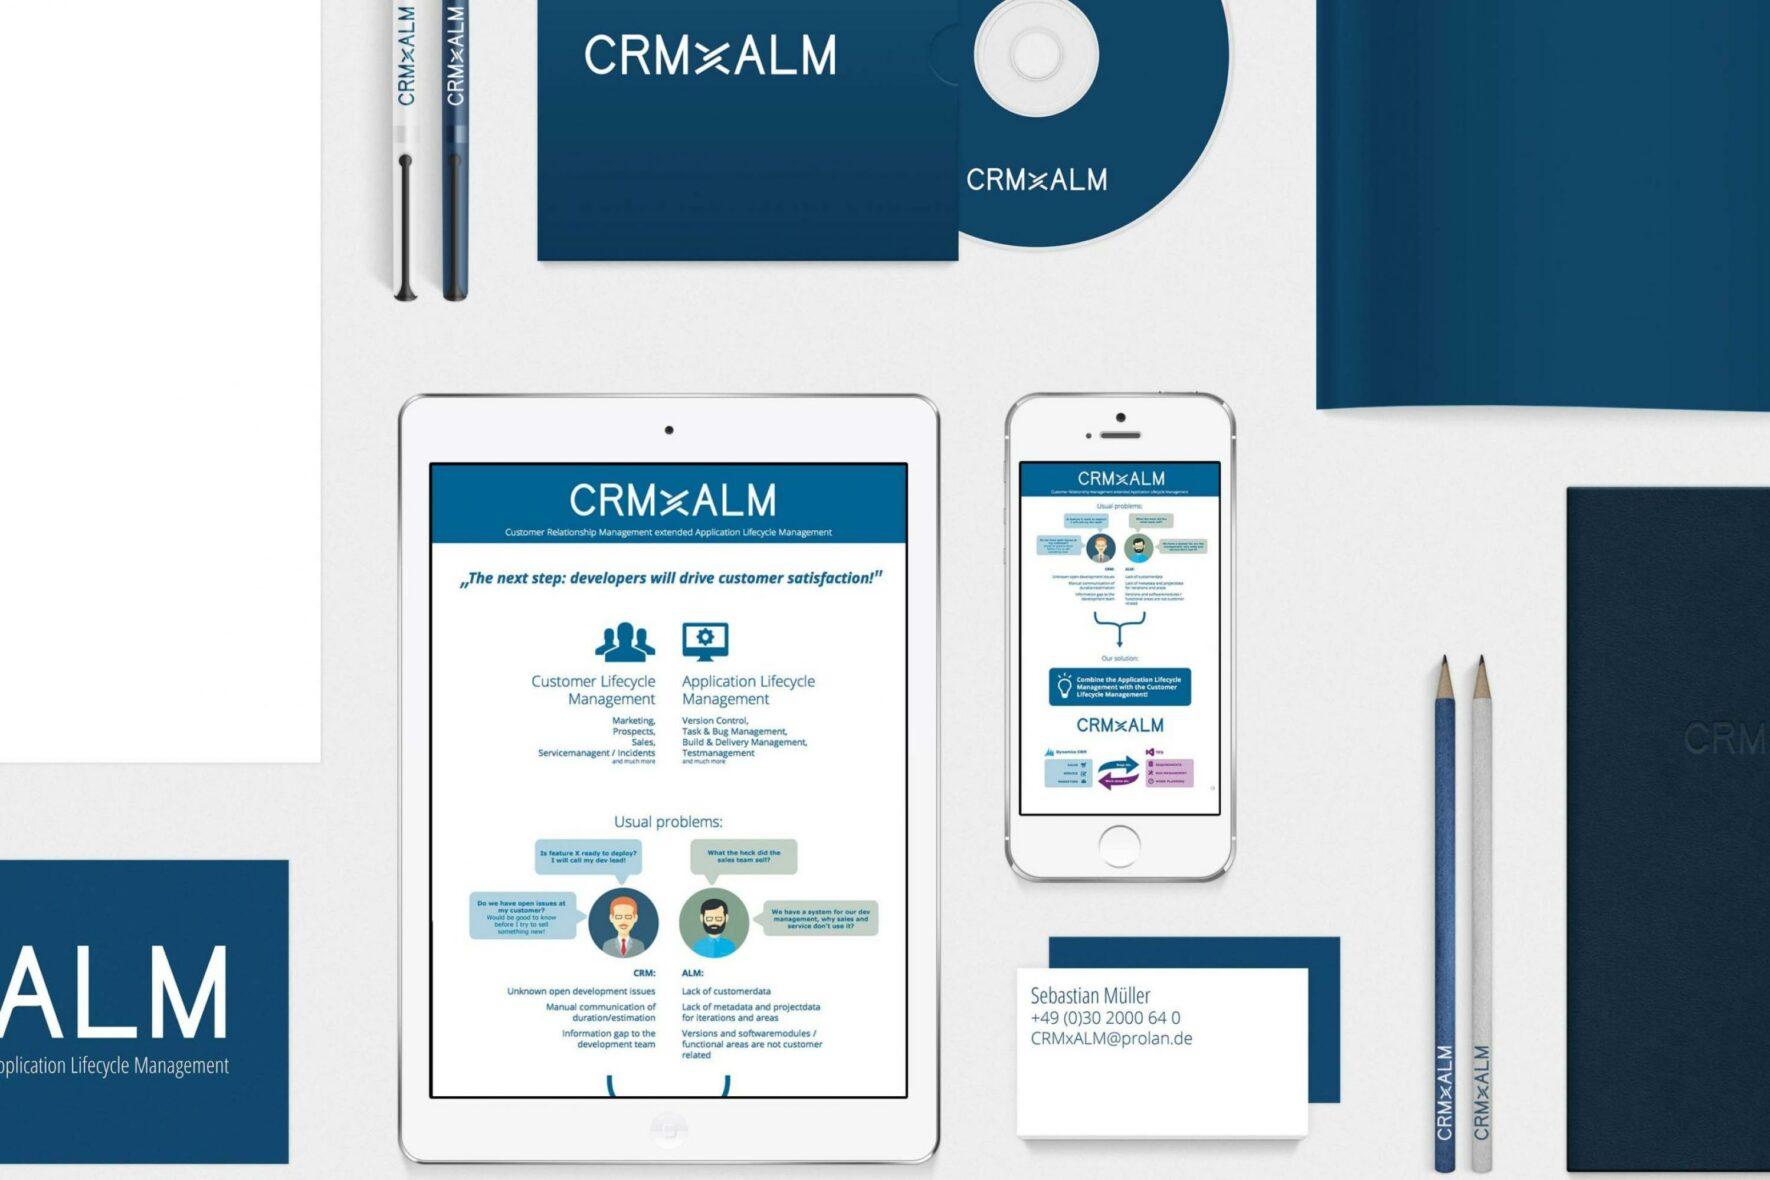 CRM-x-ALM---Customer-Relationship-Management-extended-Application-Lifecycle-Management-02